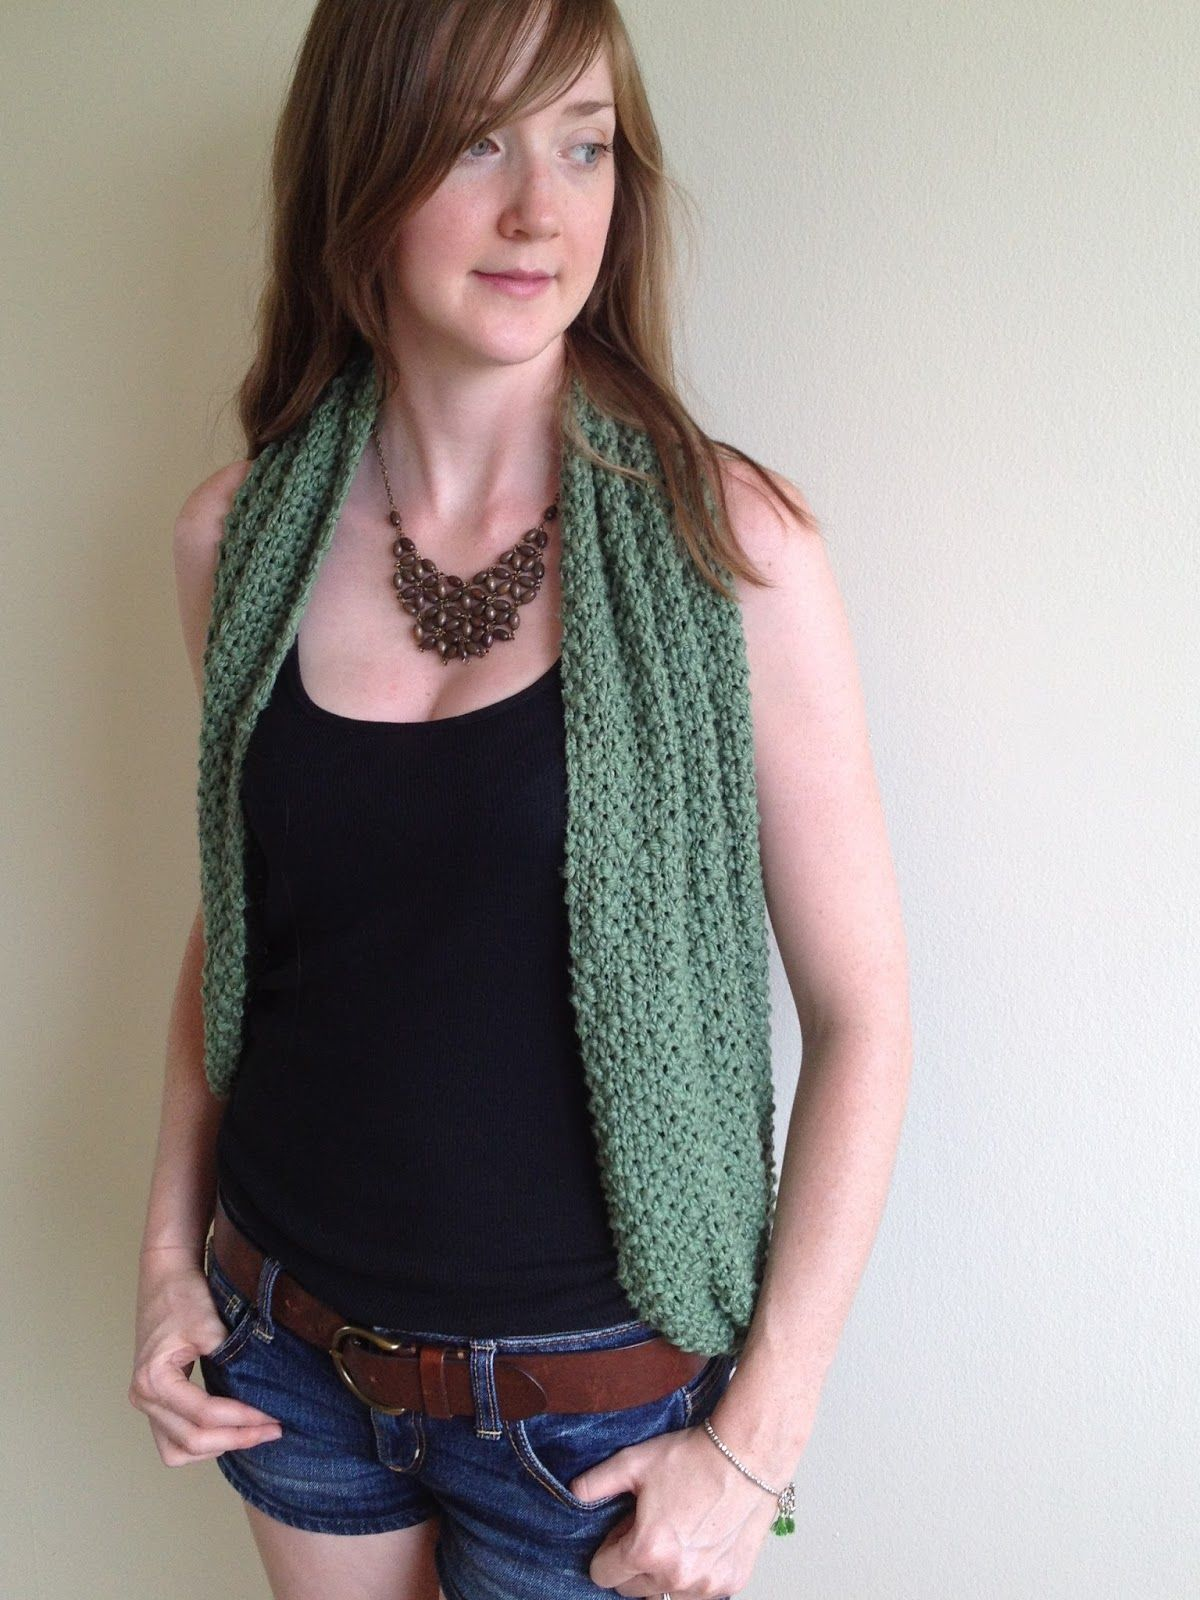 HOW TO WEAR AN INFINITY SCARF How to wear scarves, Scarf